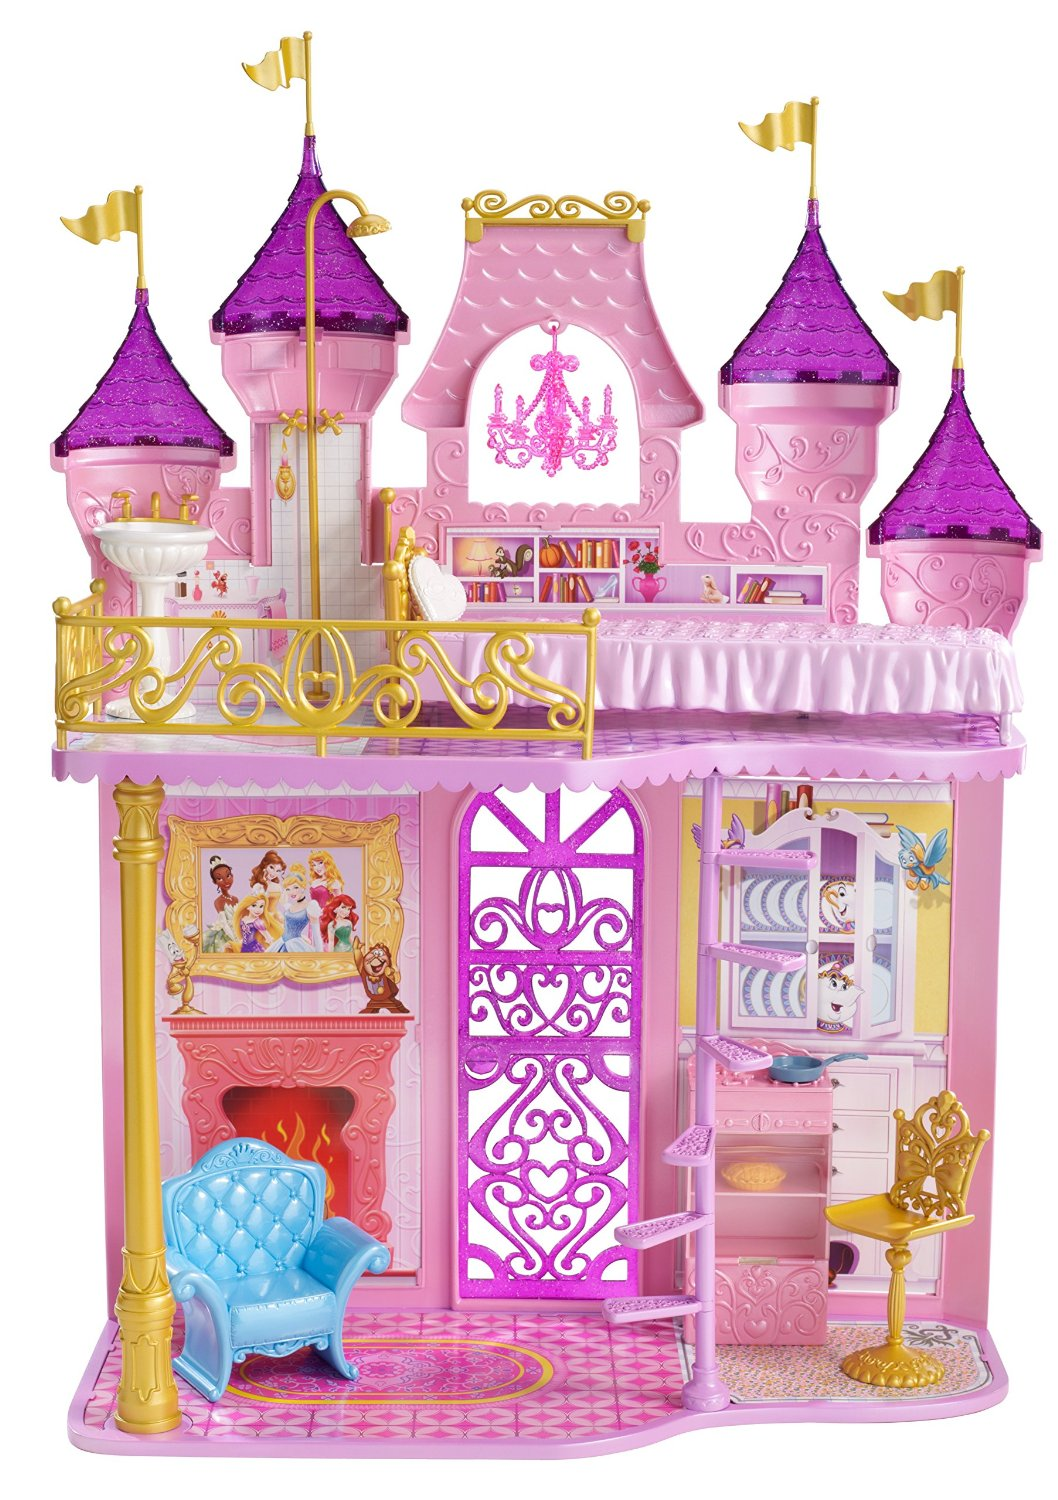 Amazon.com: Disney Princess Royal Castle: Toys & Games.